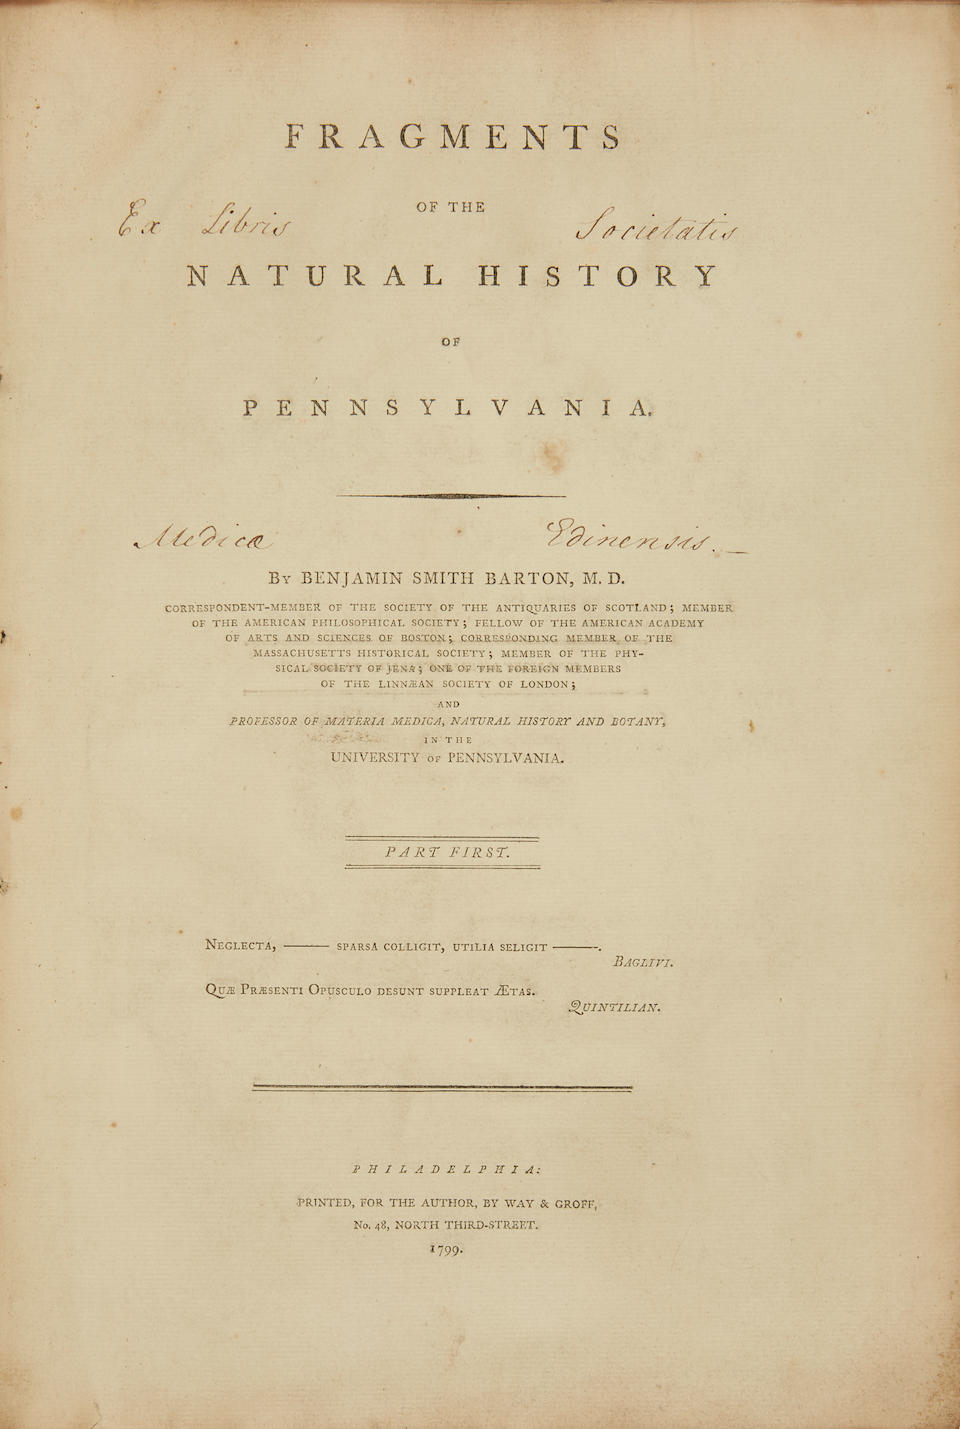 BARTON, BENJAMIN SMITH. 1766-1815. Fragments of the Natural History of Pennsylvania. Philadelphia: Printed for the Author by Way & Groff, 1799 .